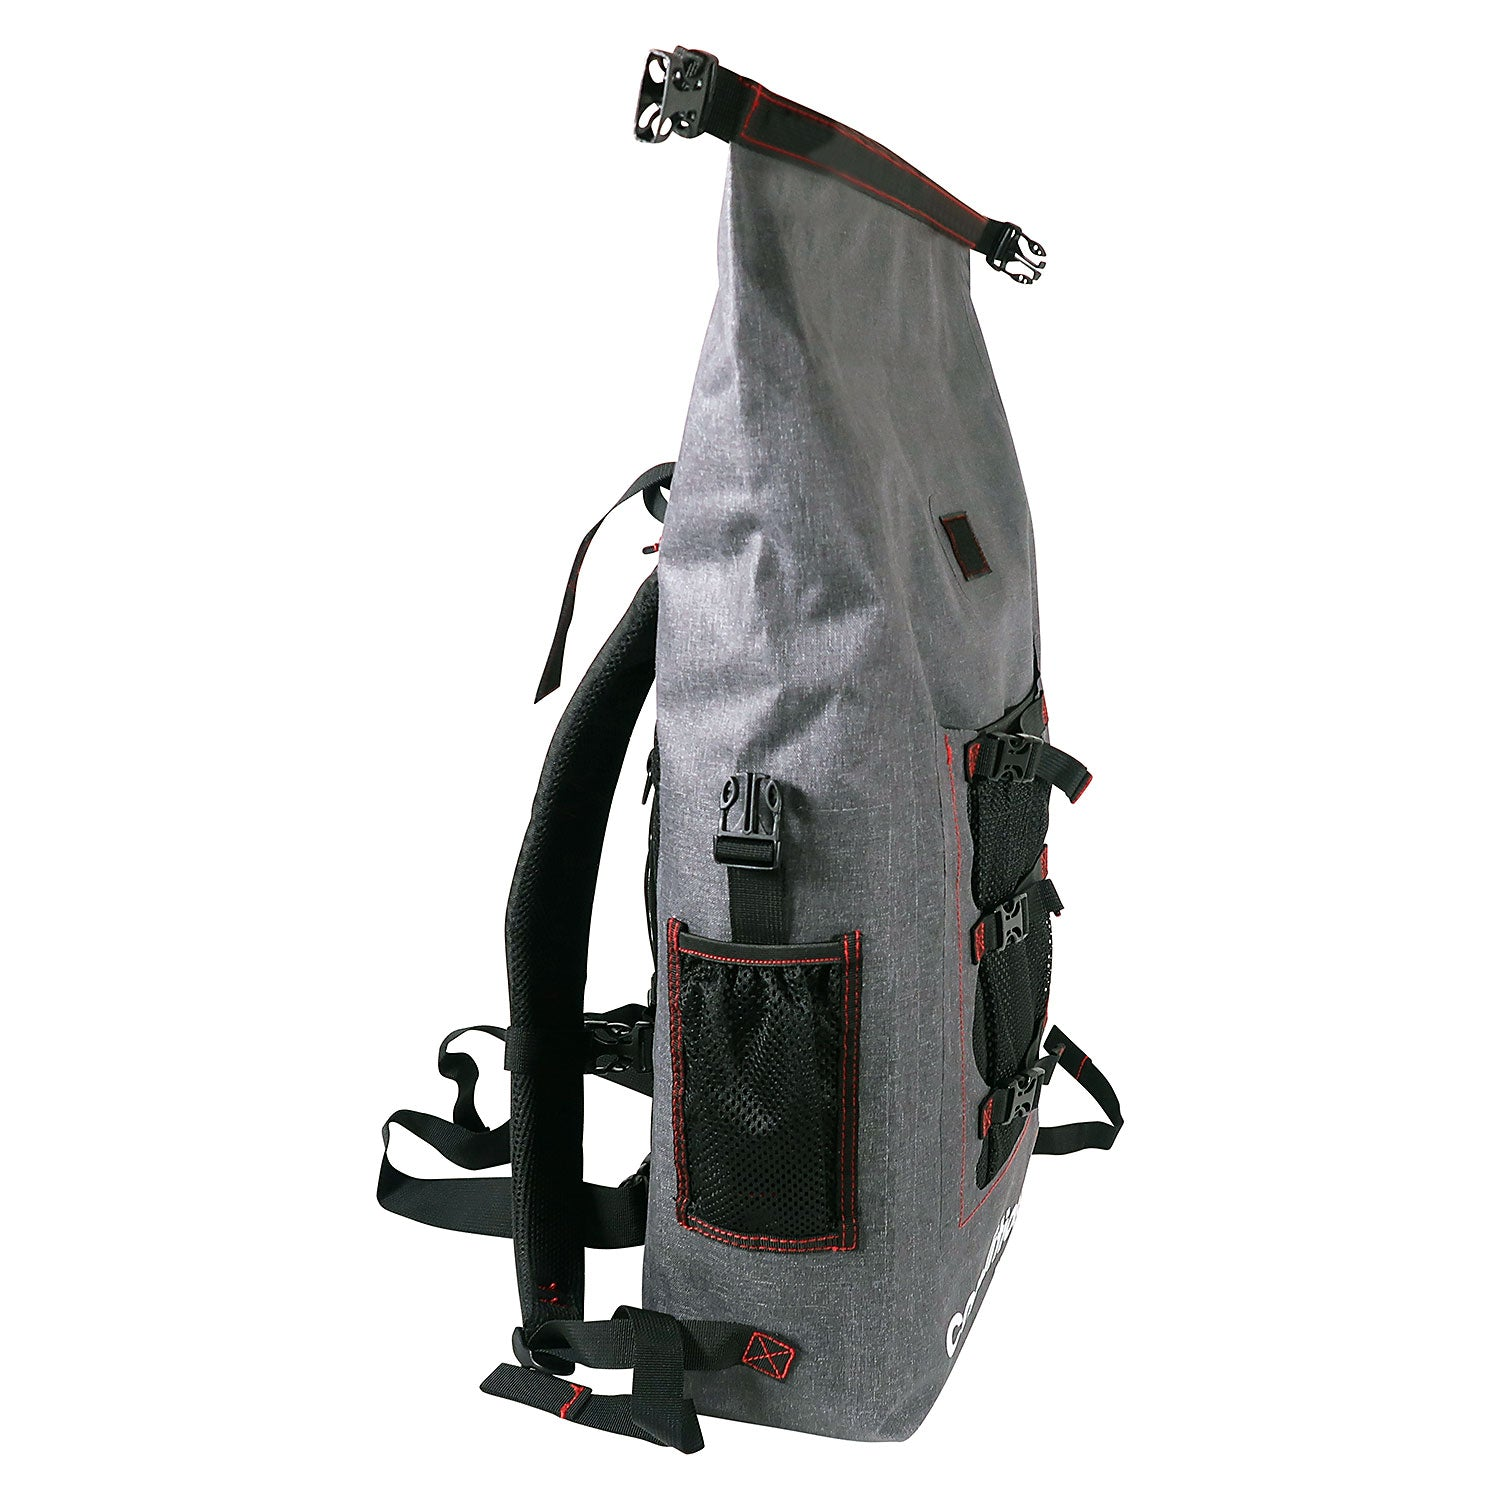 side view of the 30L Dry-Bag with Front Net Pouch